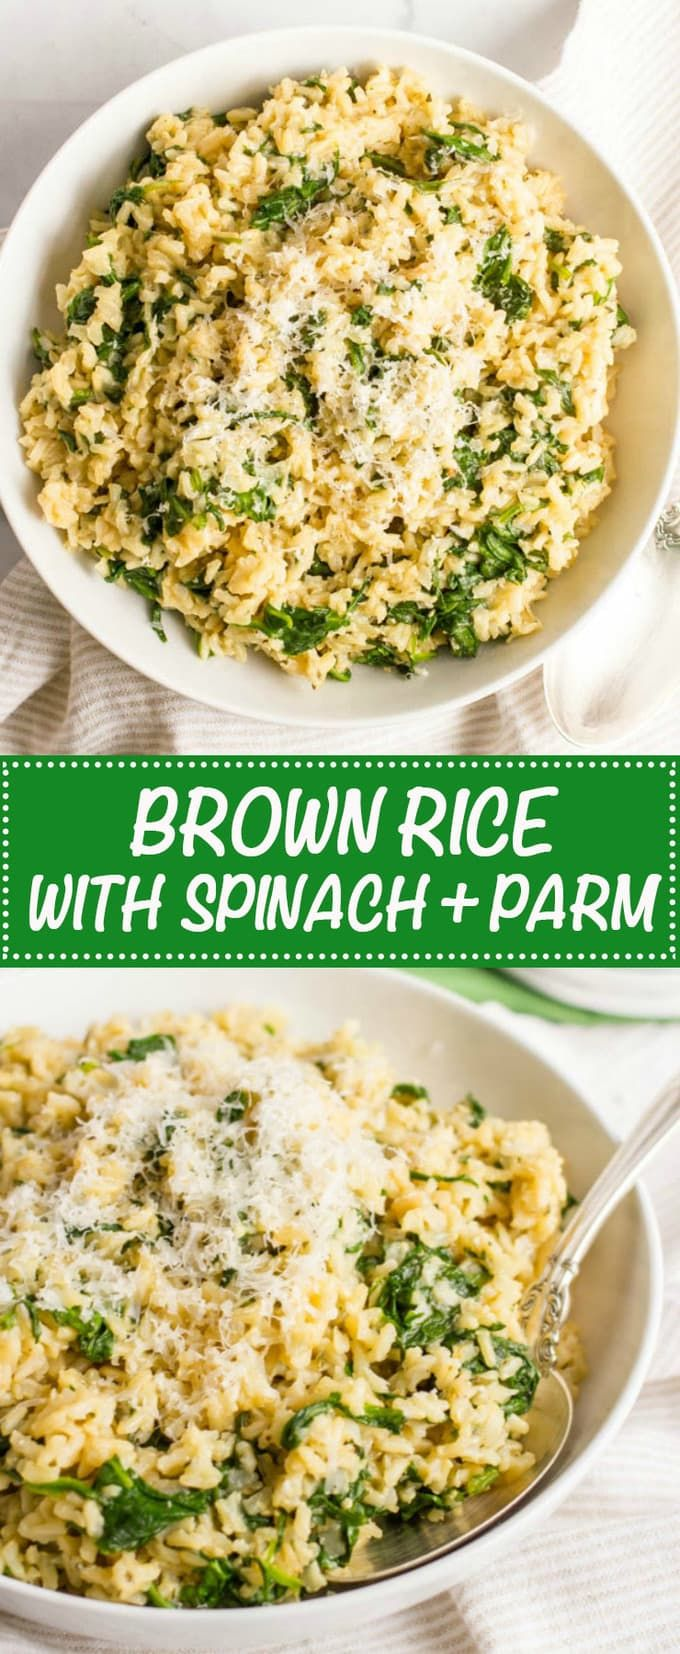 Brown rice with spinach and Parmesan cheese is an easy, healthy, one-pot side dish with just a few simple ingredients! | www.familyfoodonthetable.com